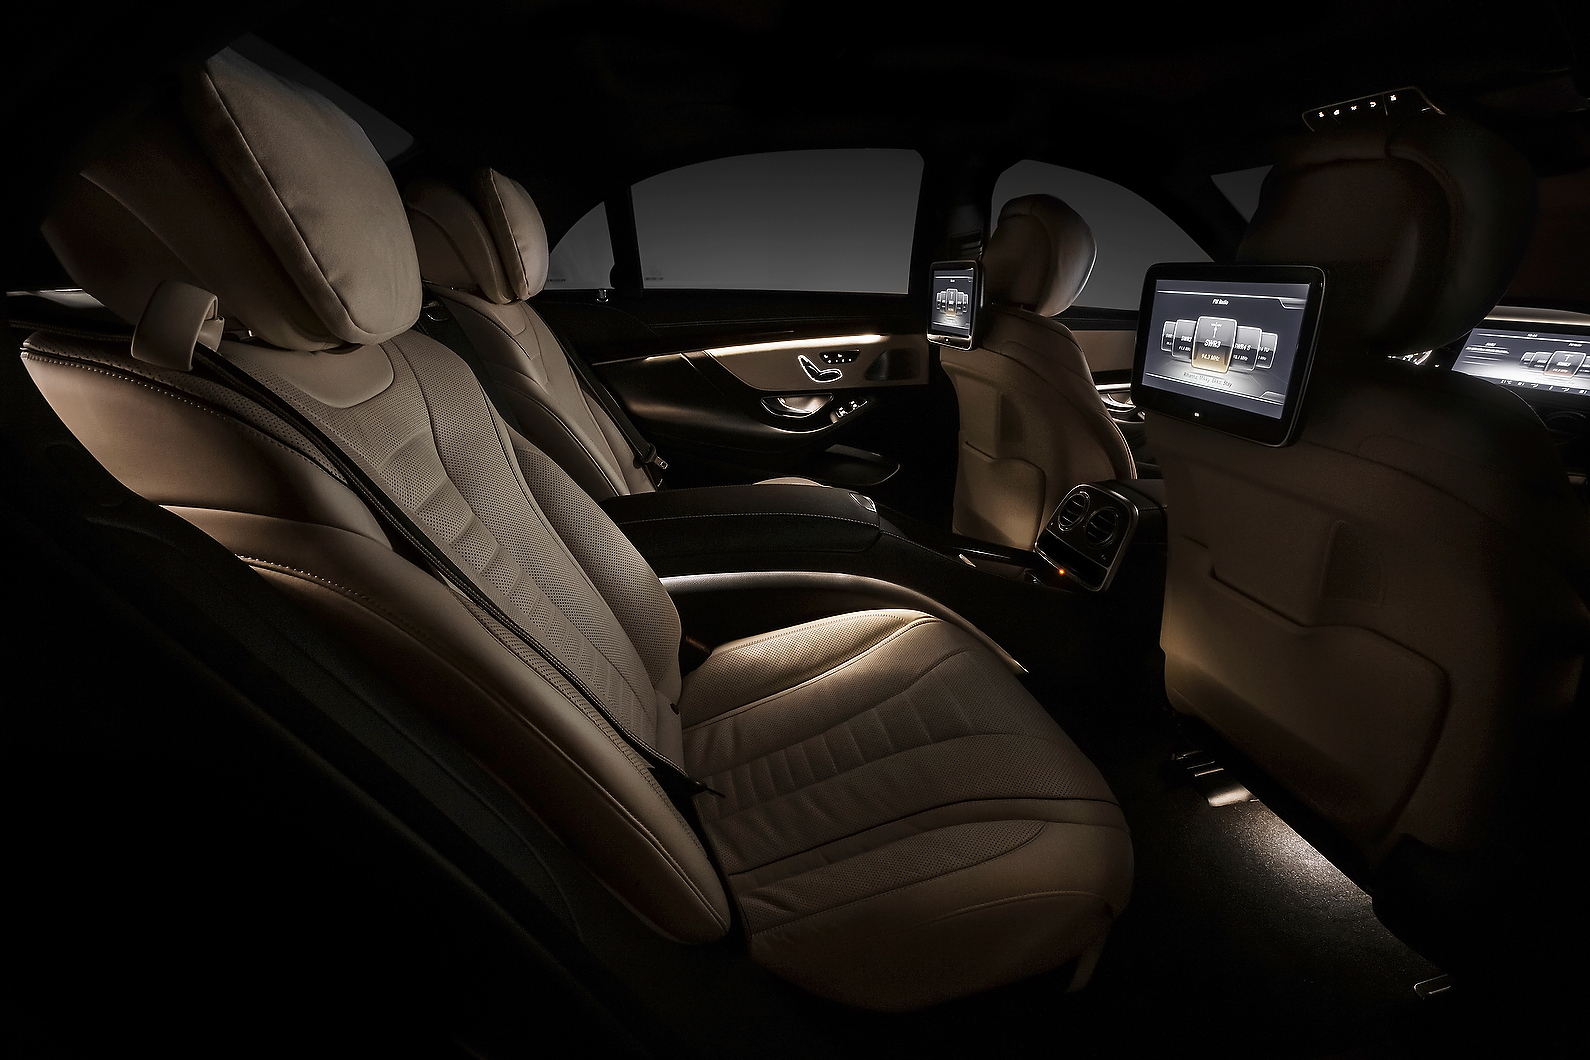 2014 Mercedes S Class Official Interior Photos Released